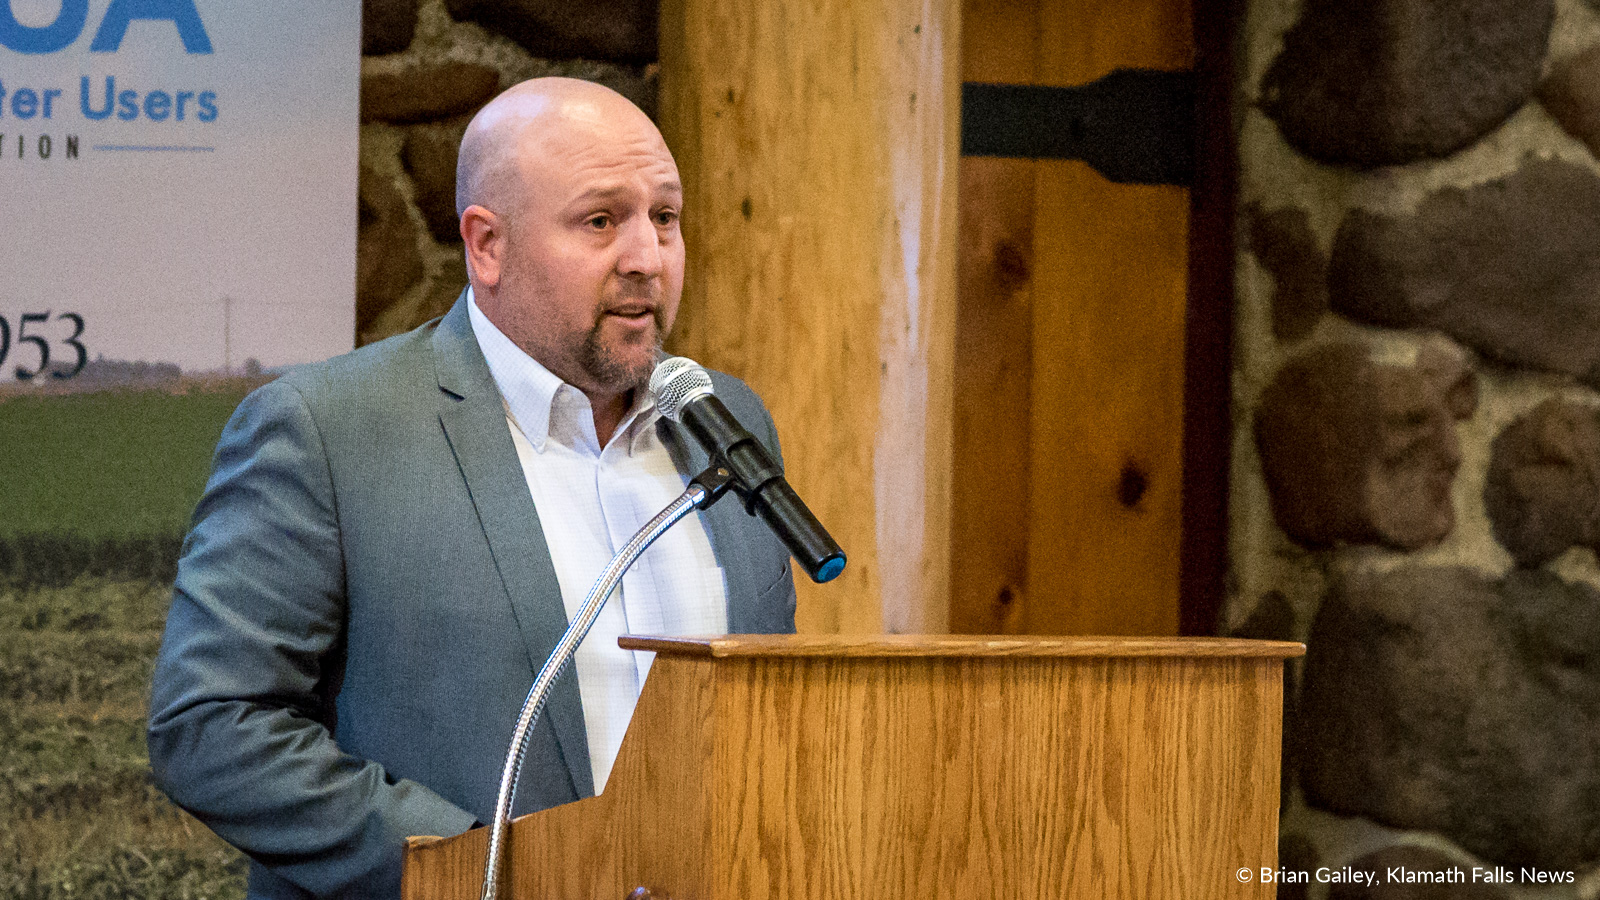 Klamath Water Users Association Executive Director Scott White speaks at the 2018 KWUA Annual Meeting. (Brian Gailey)